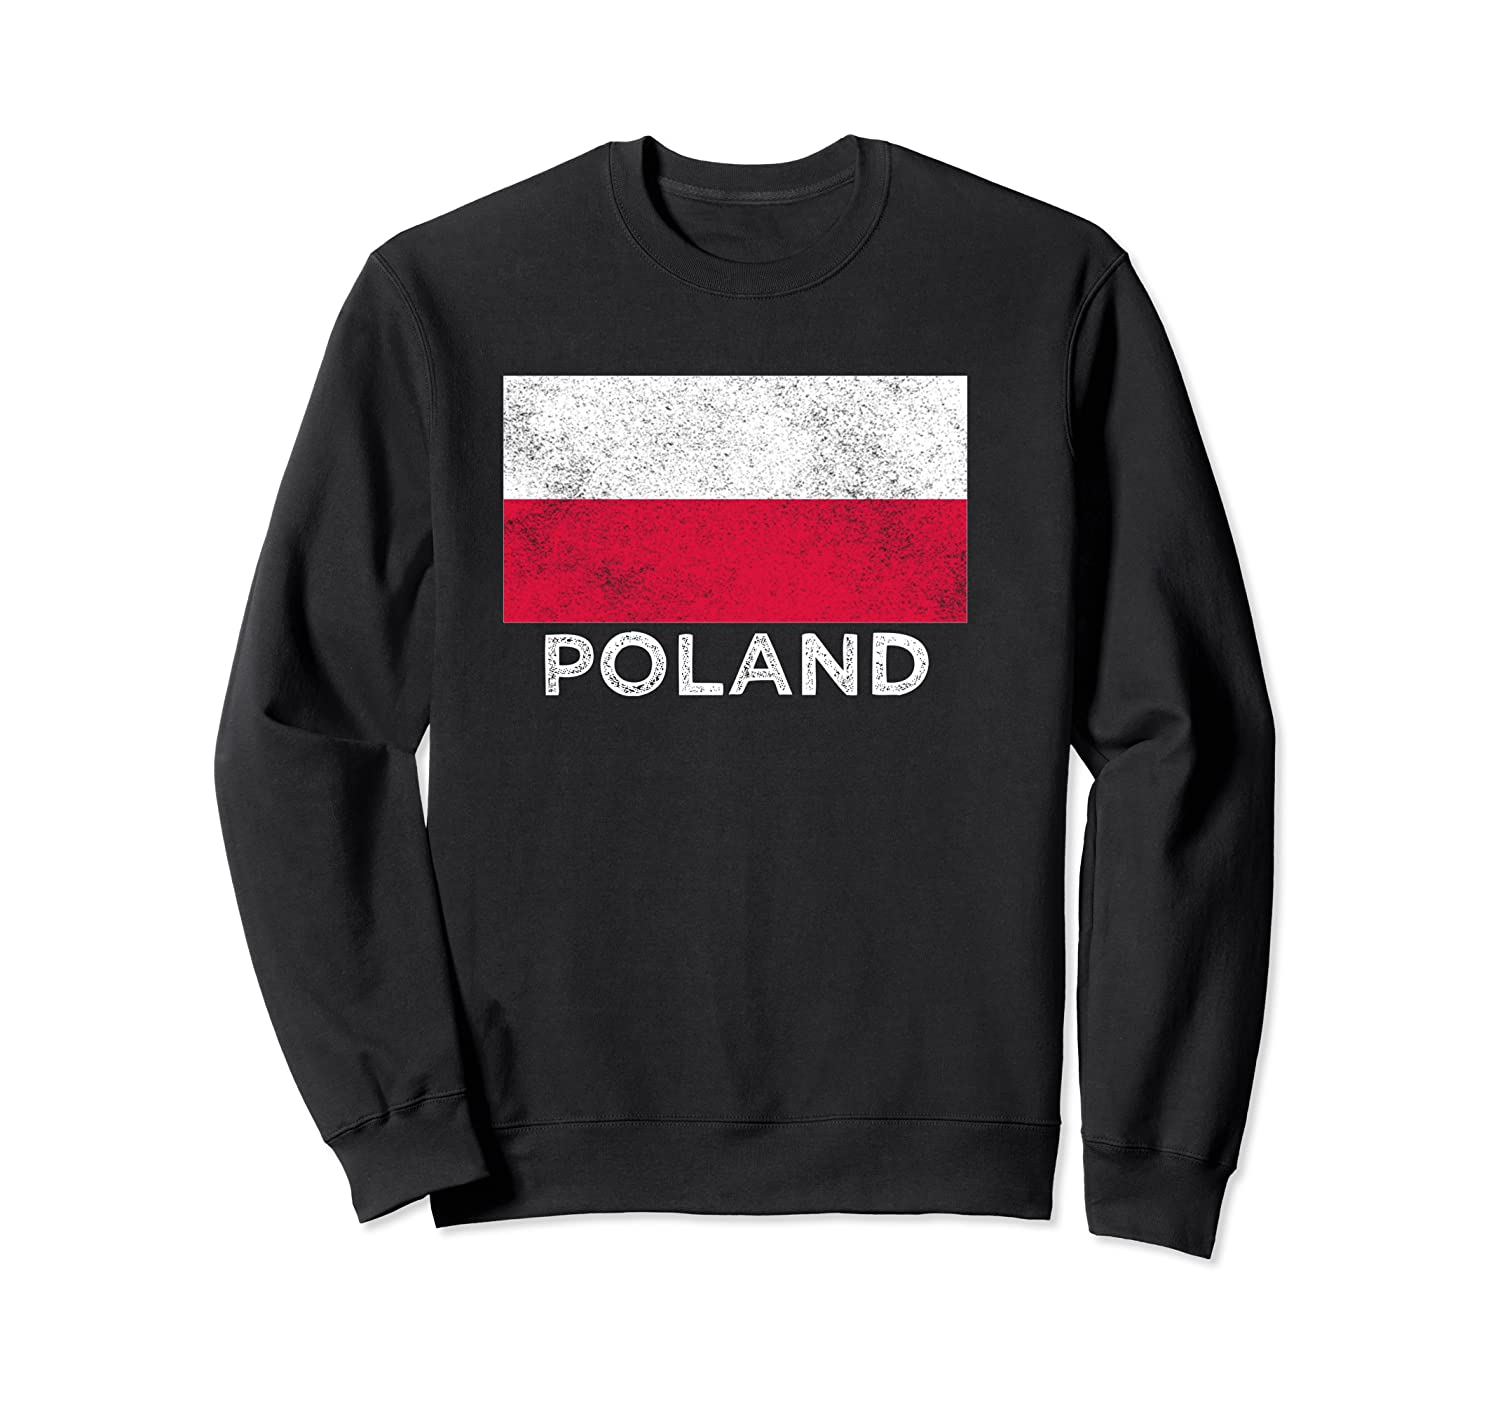 Poland National Flag - Distressed For & Shirts Crewneck Sweater